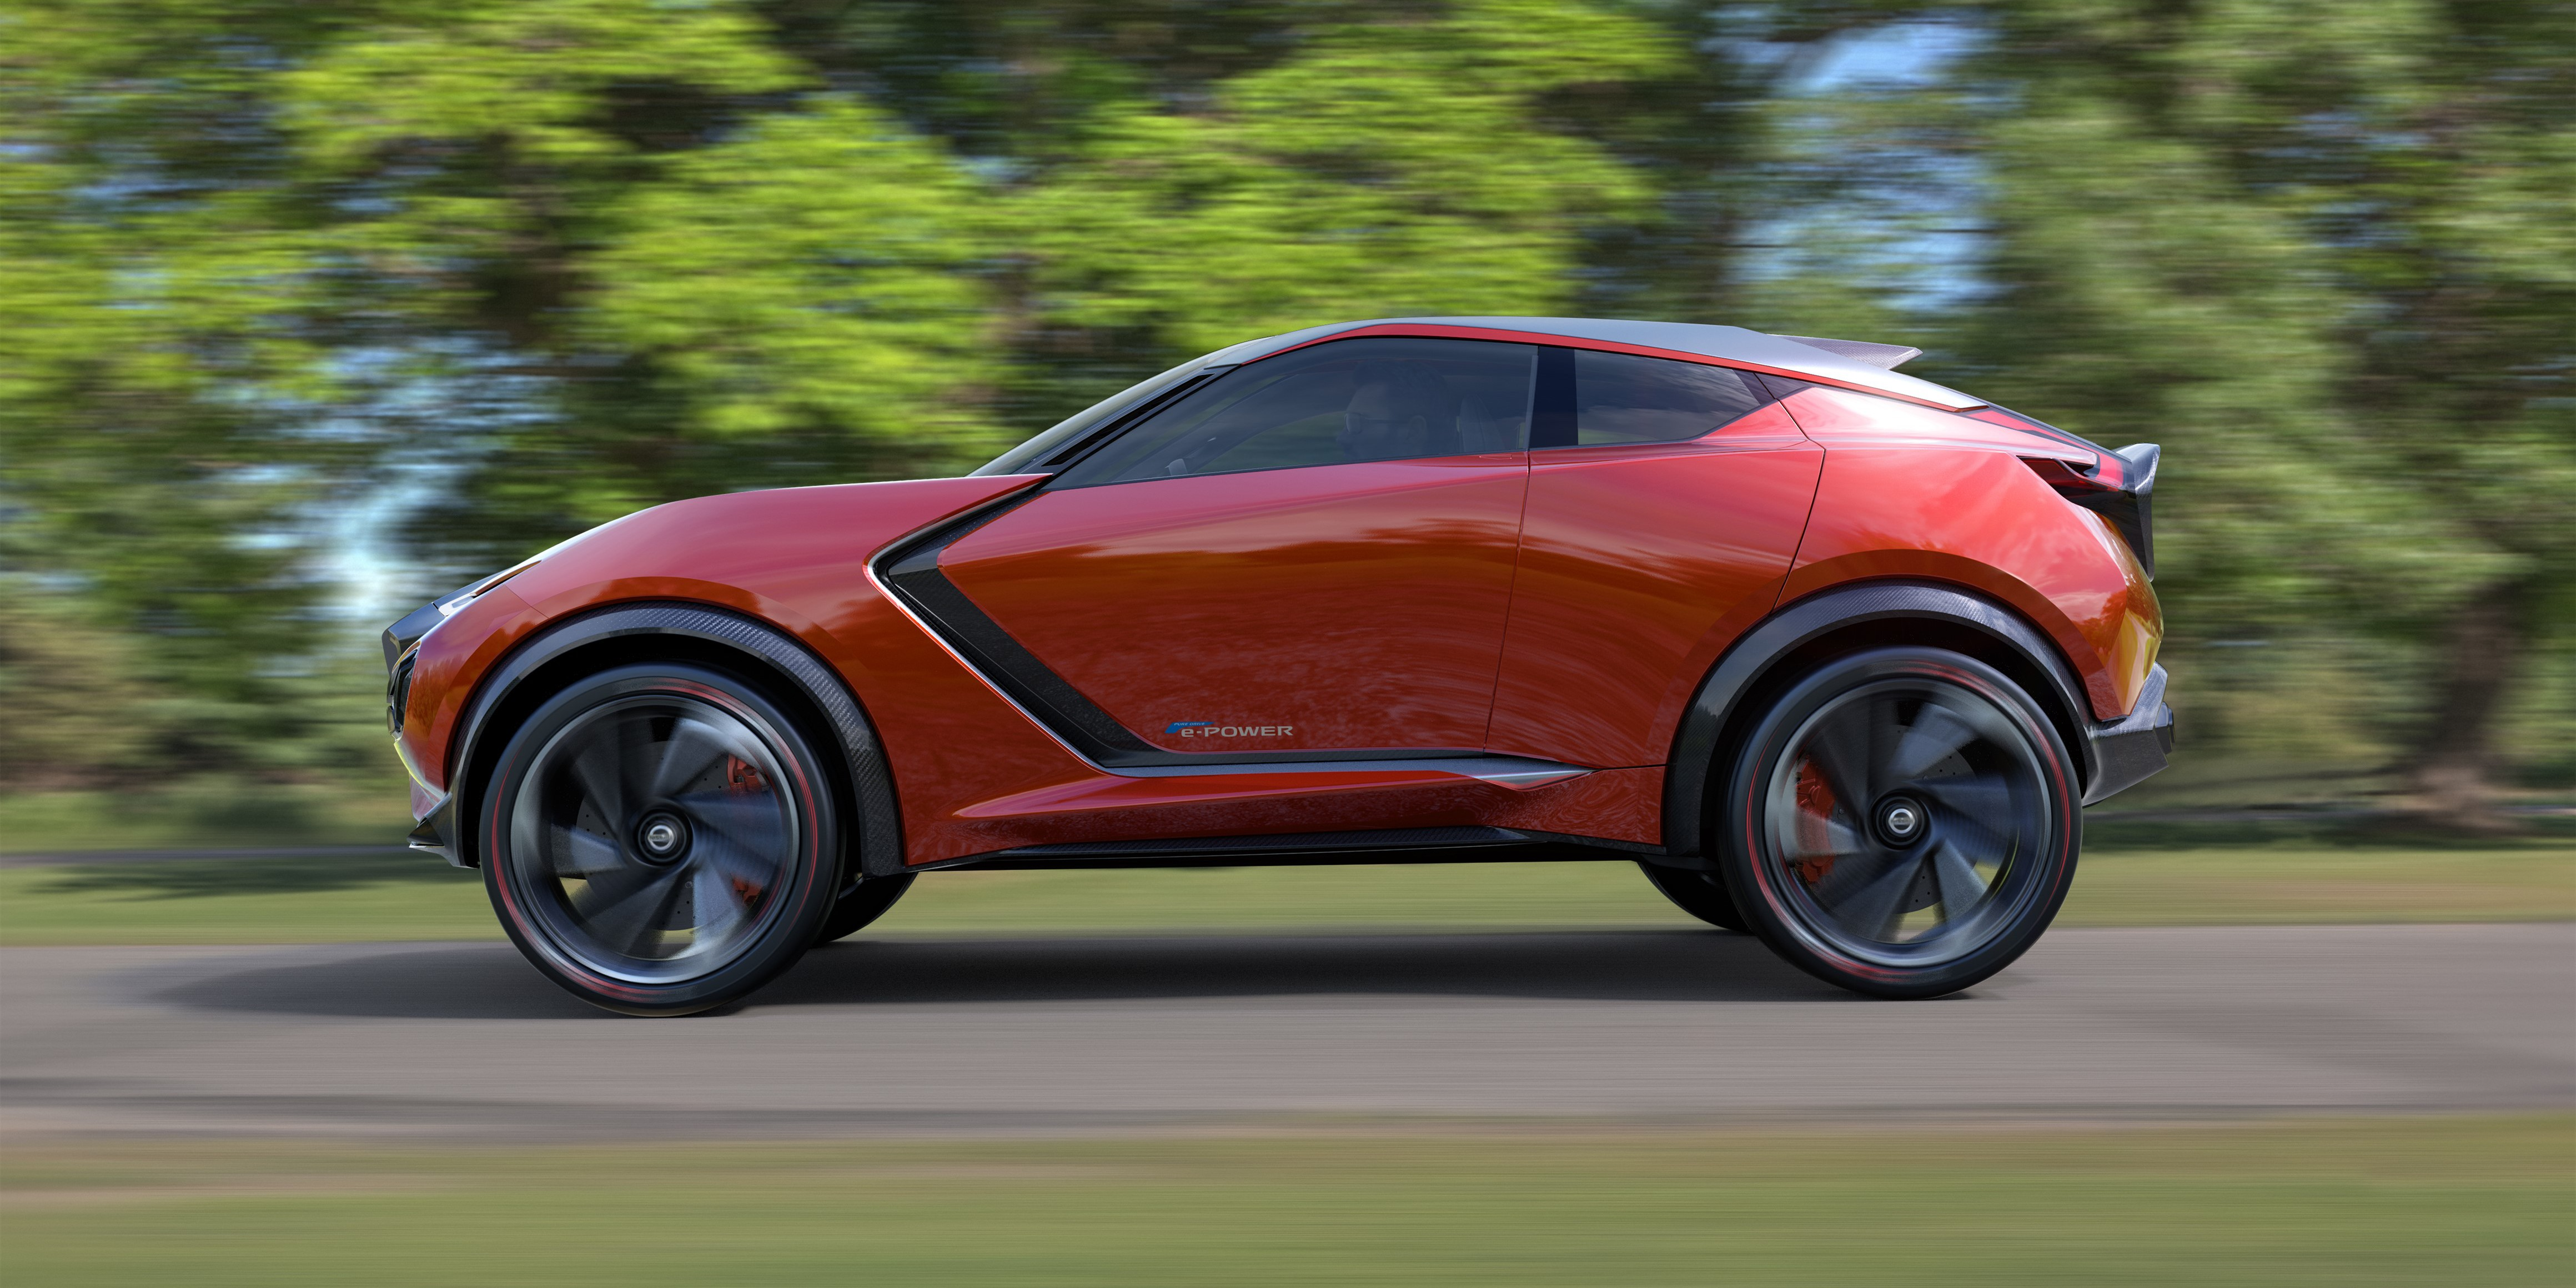 Nissan introduces the Gripz concept a sport crossover powered by